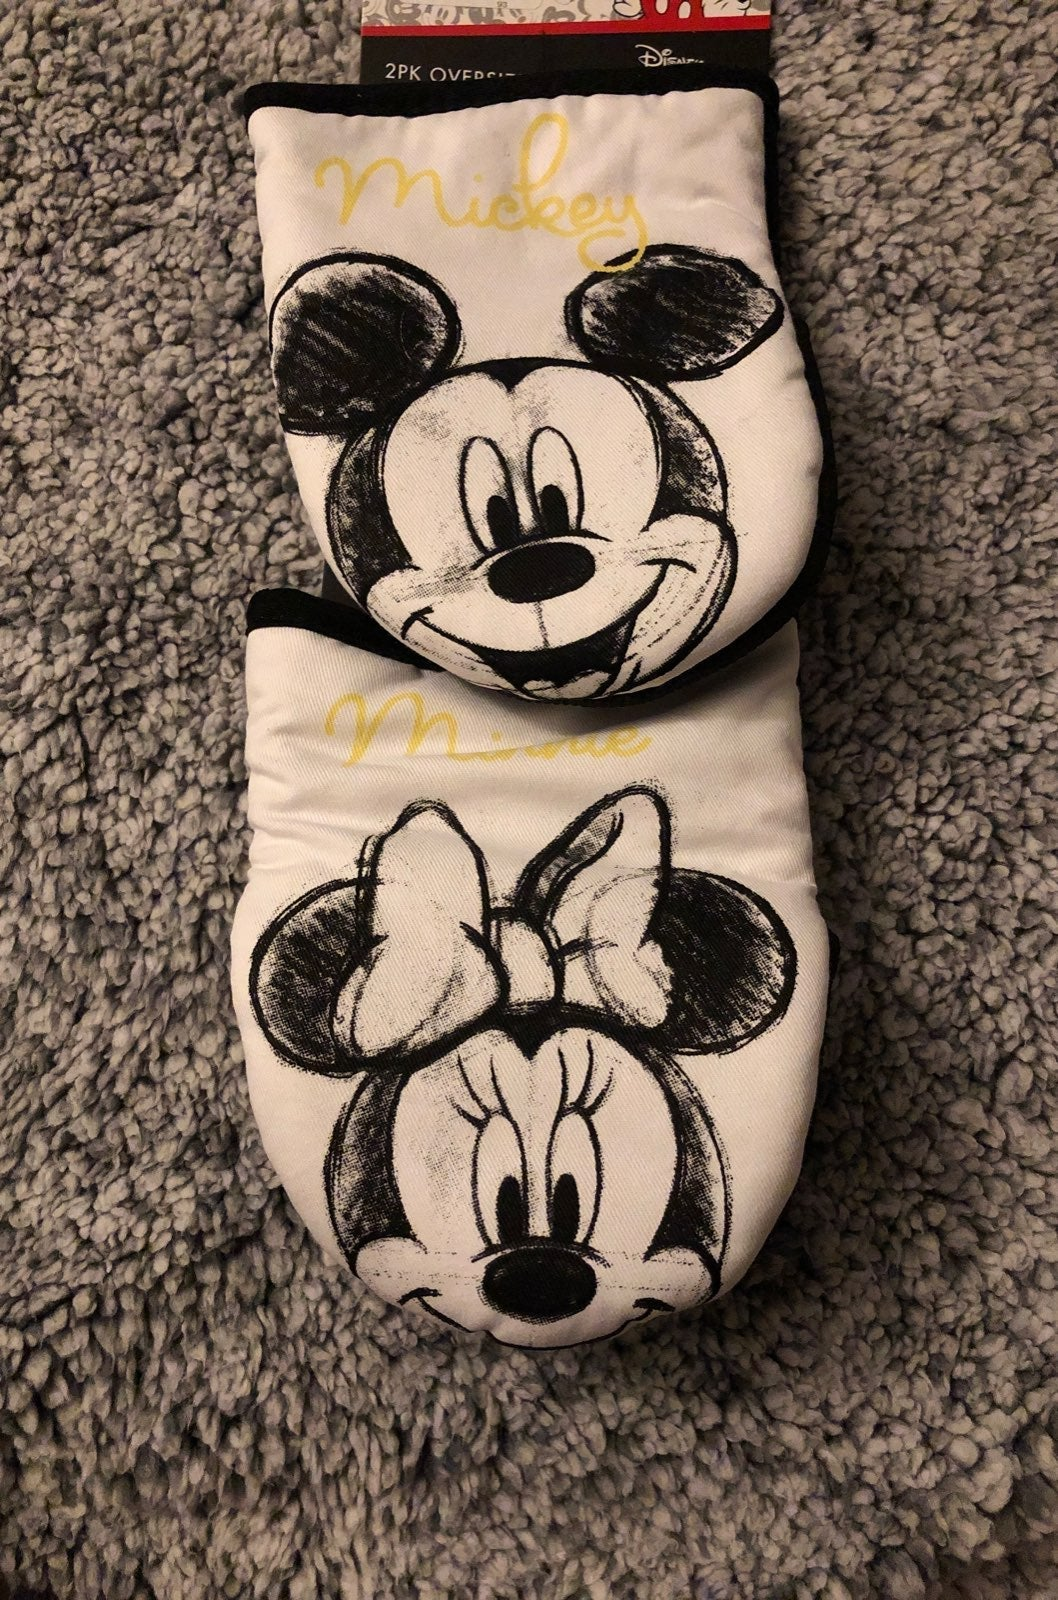 Disney Minnie Mouse kitchen oven mitts